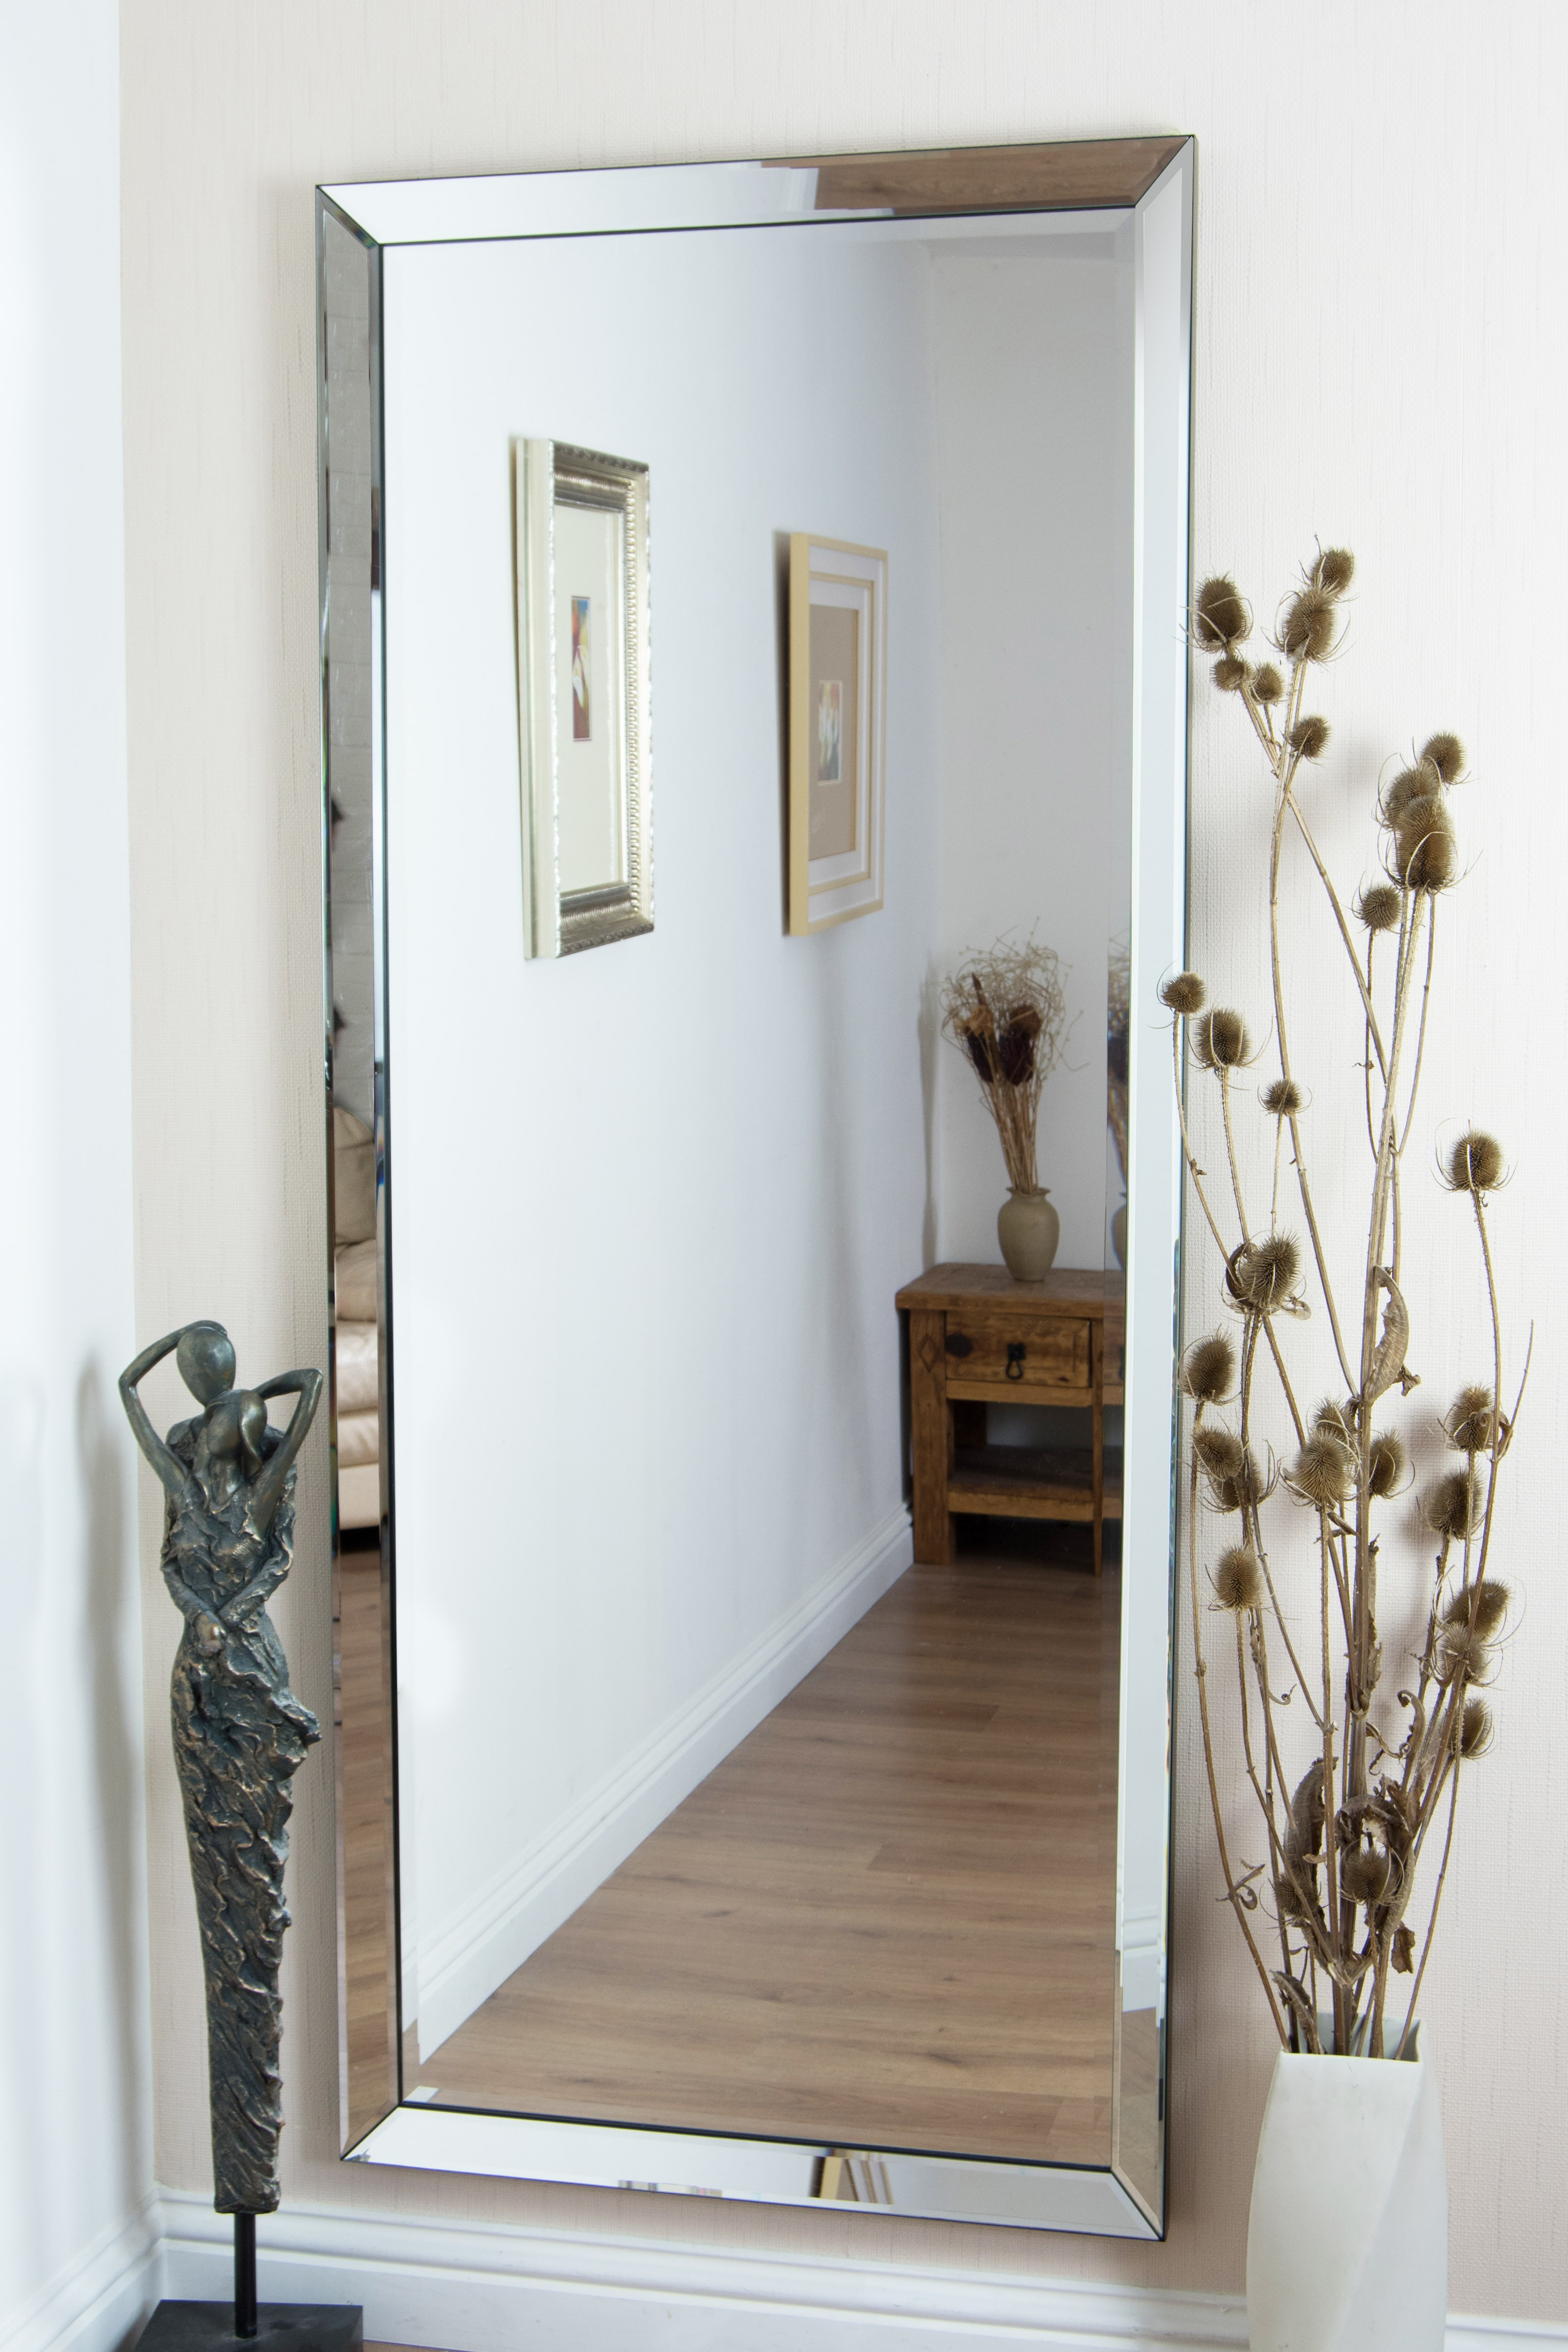 Wall Mirrors For Bedroom Intended For Well Known Large Wall Mirrors For Wider And Spacious Bedroom Look (View 20 of 20)